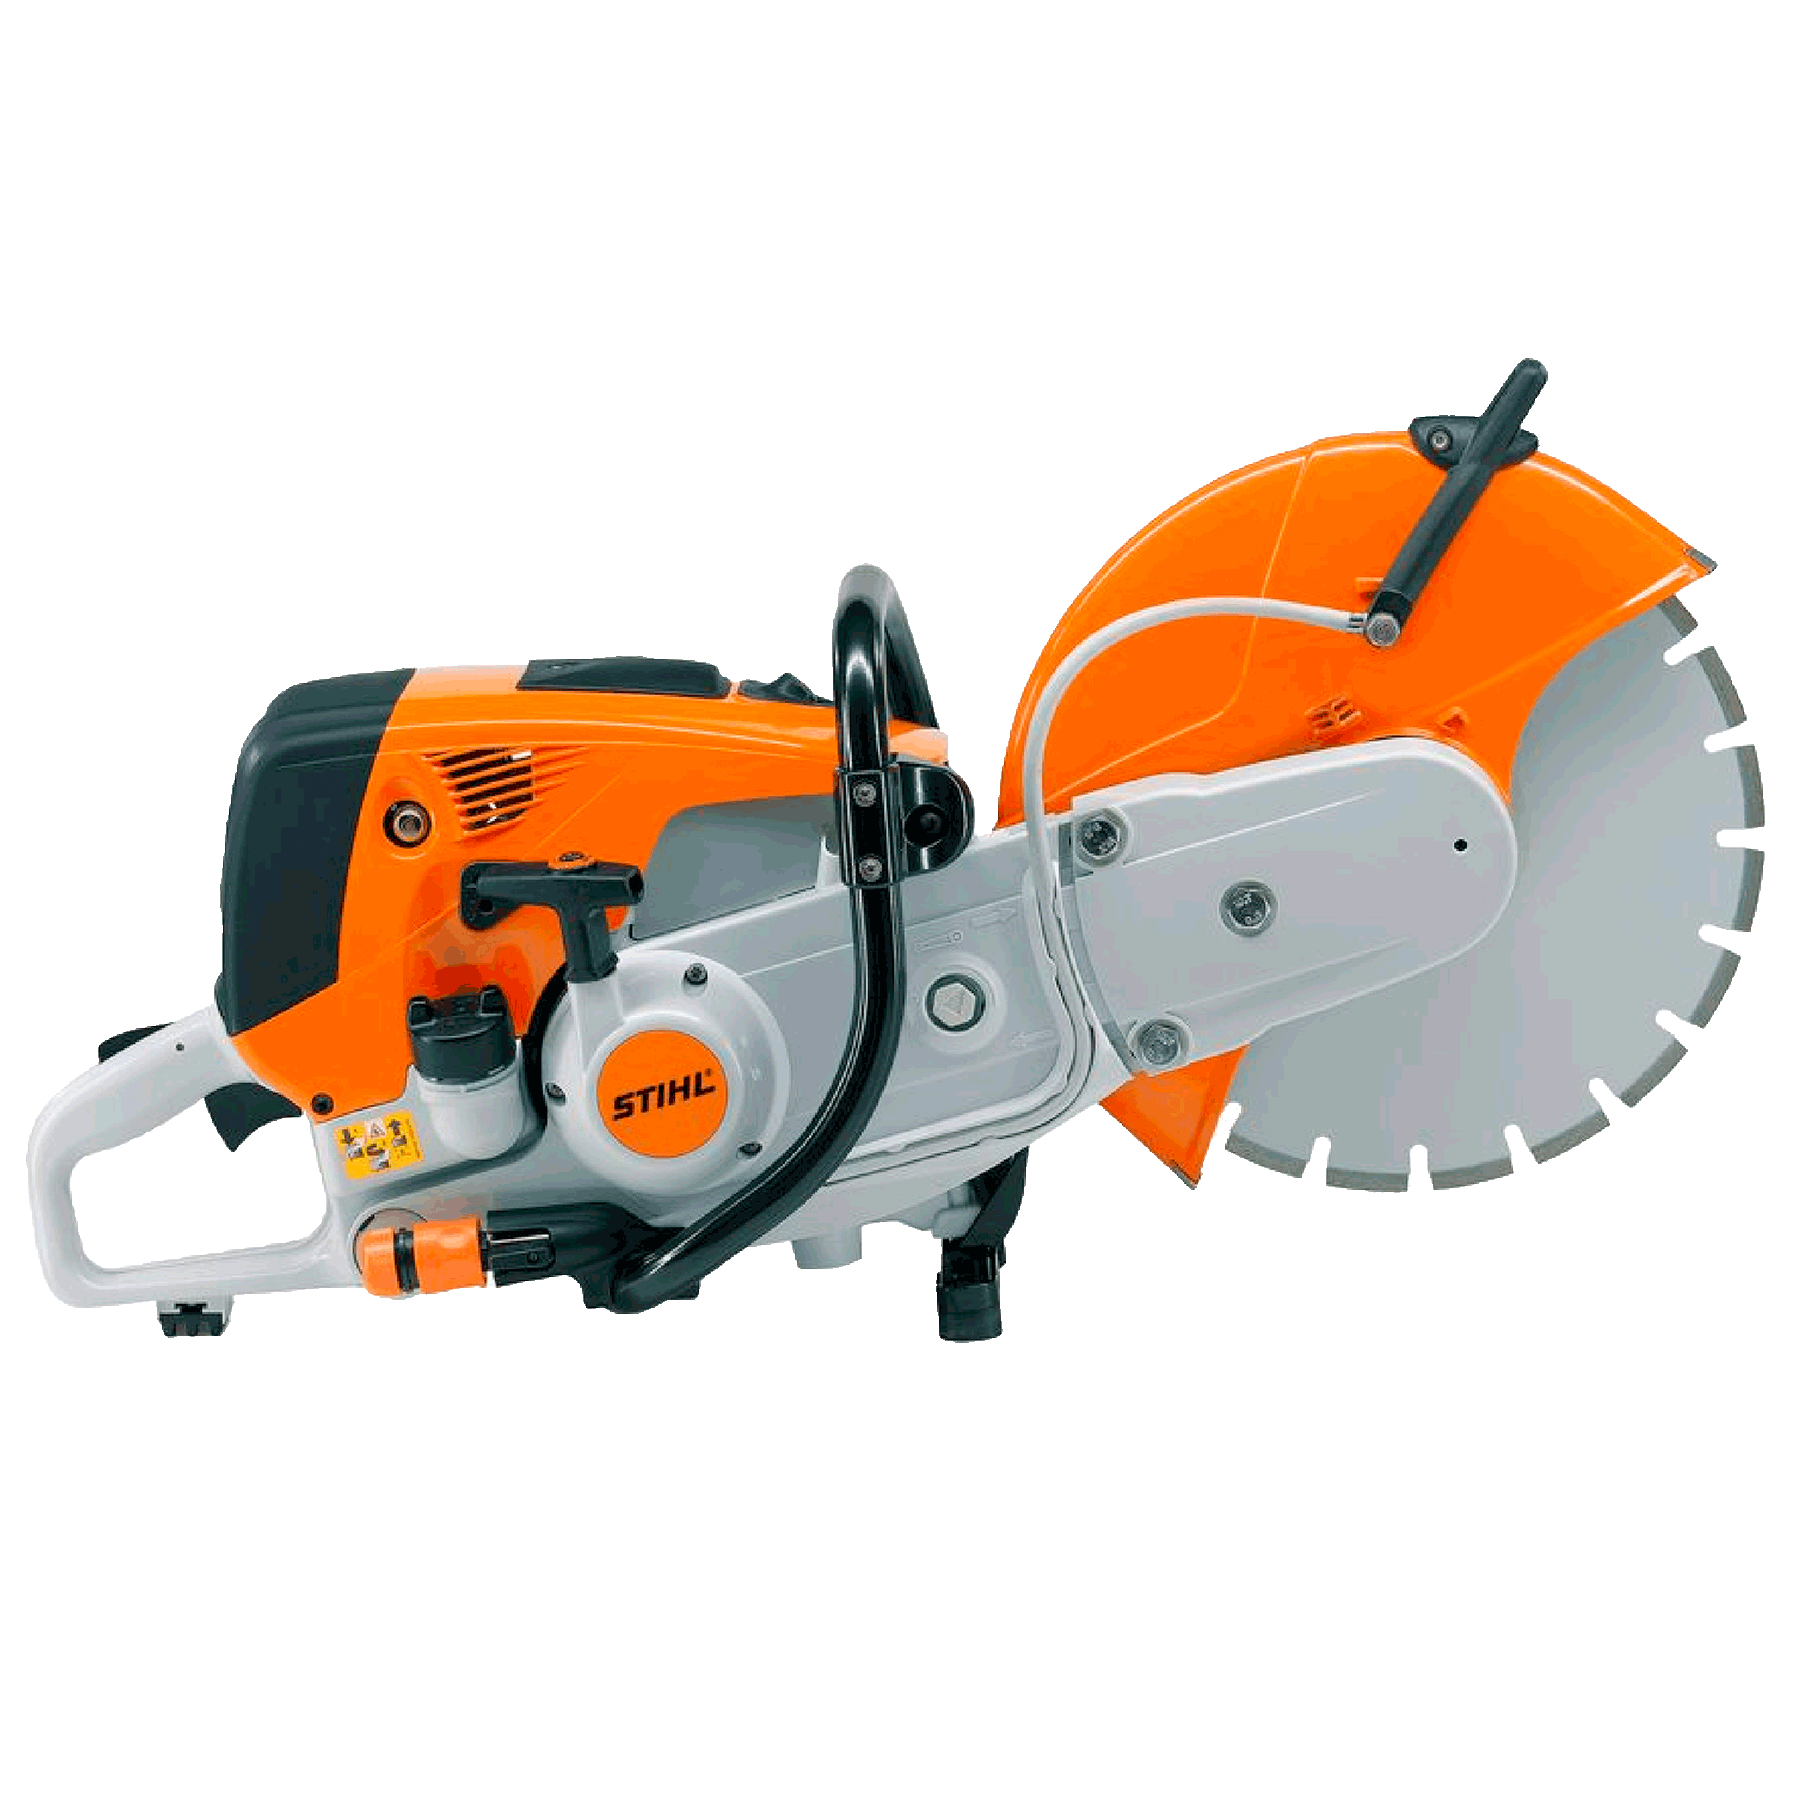 Portable concrete saw 14in mixed gas